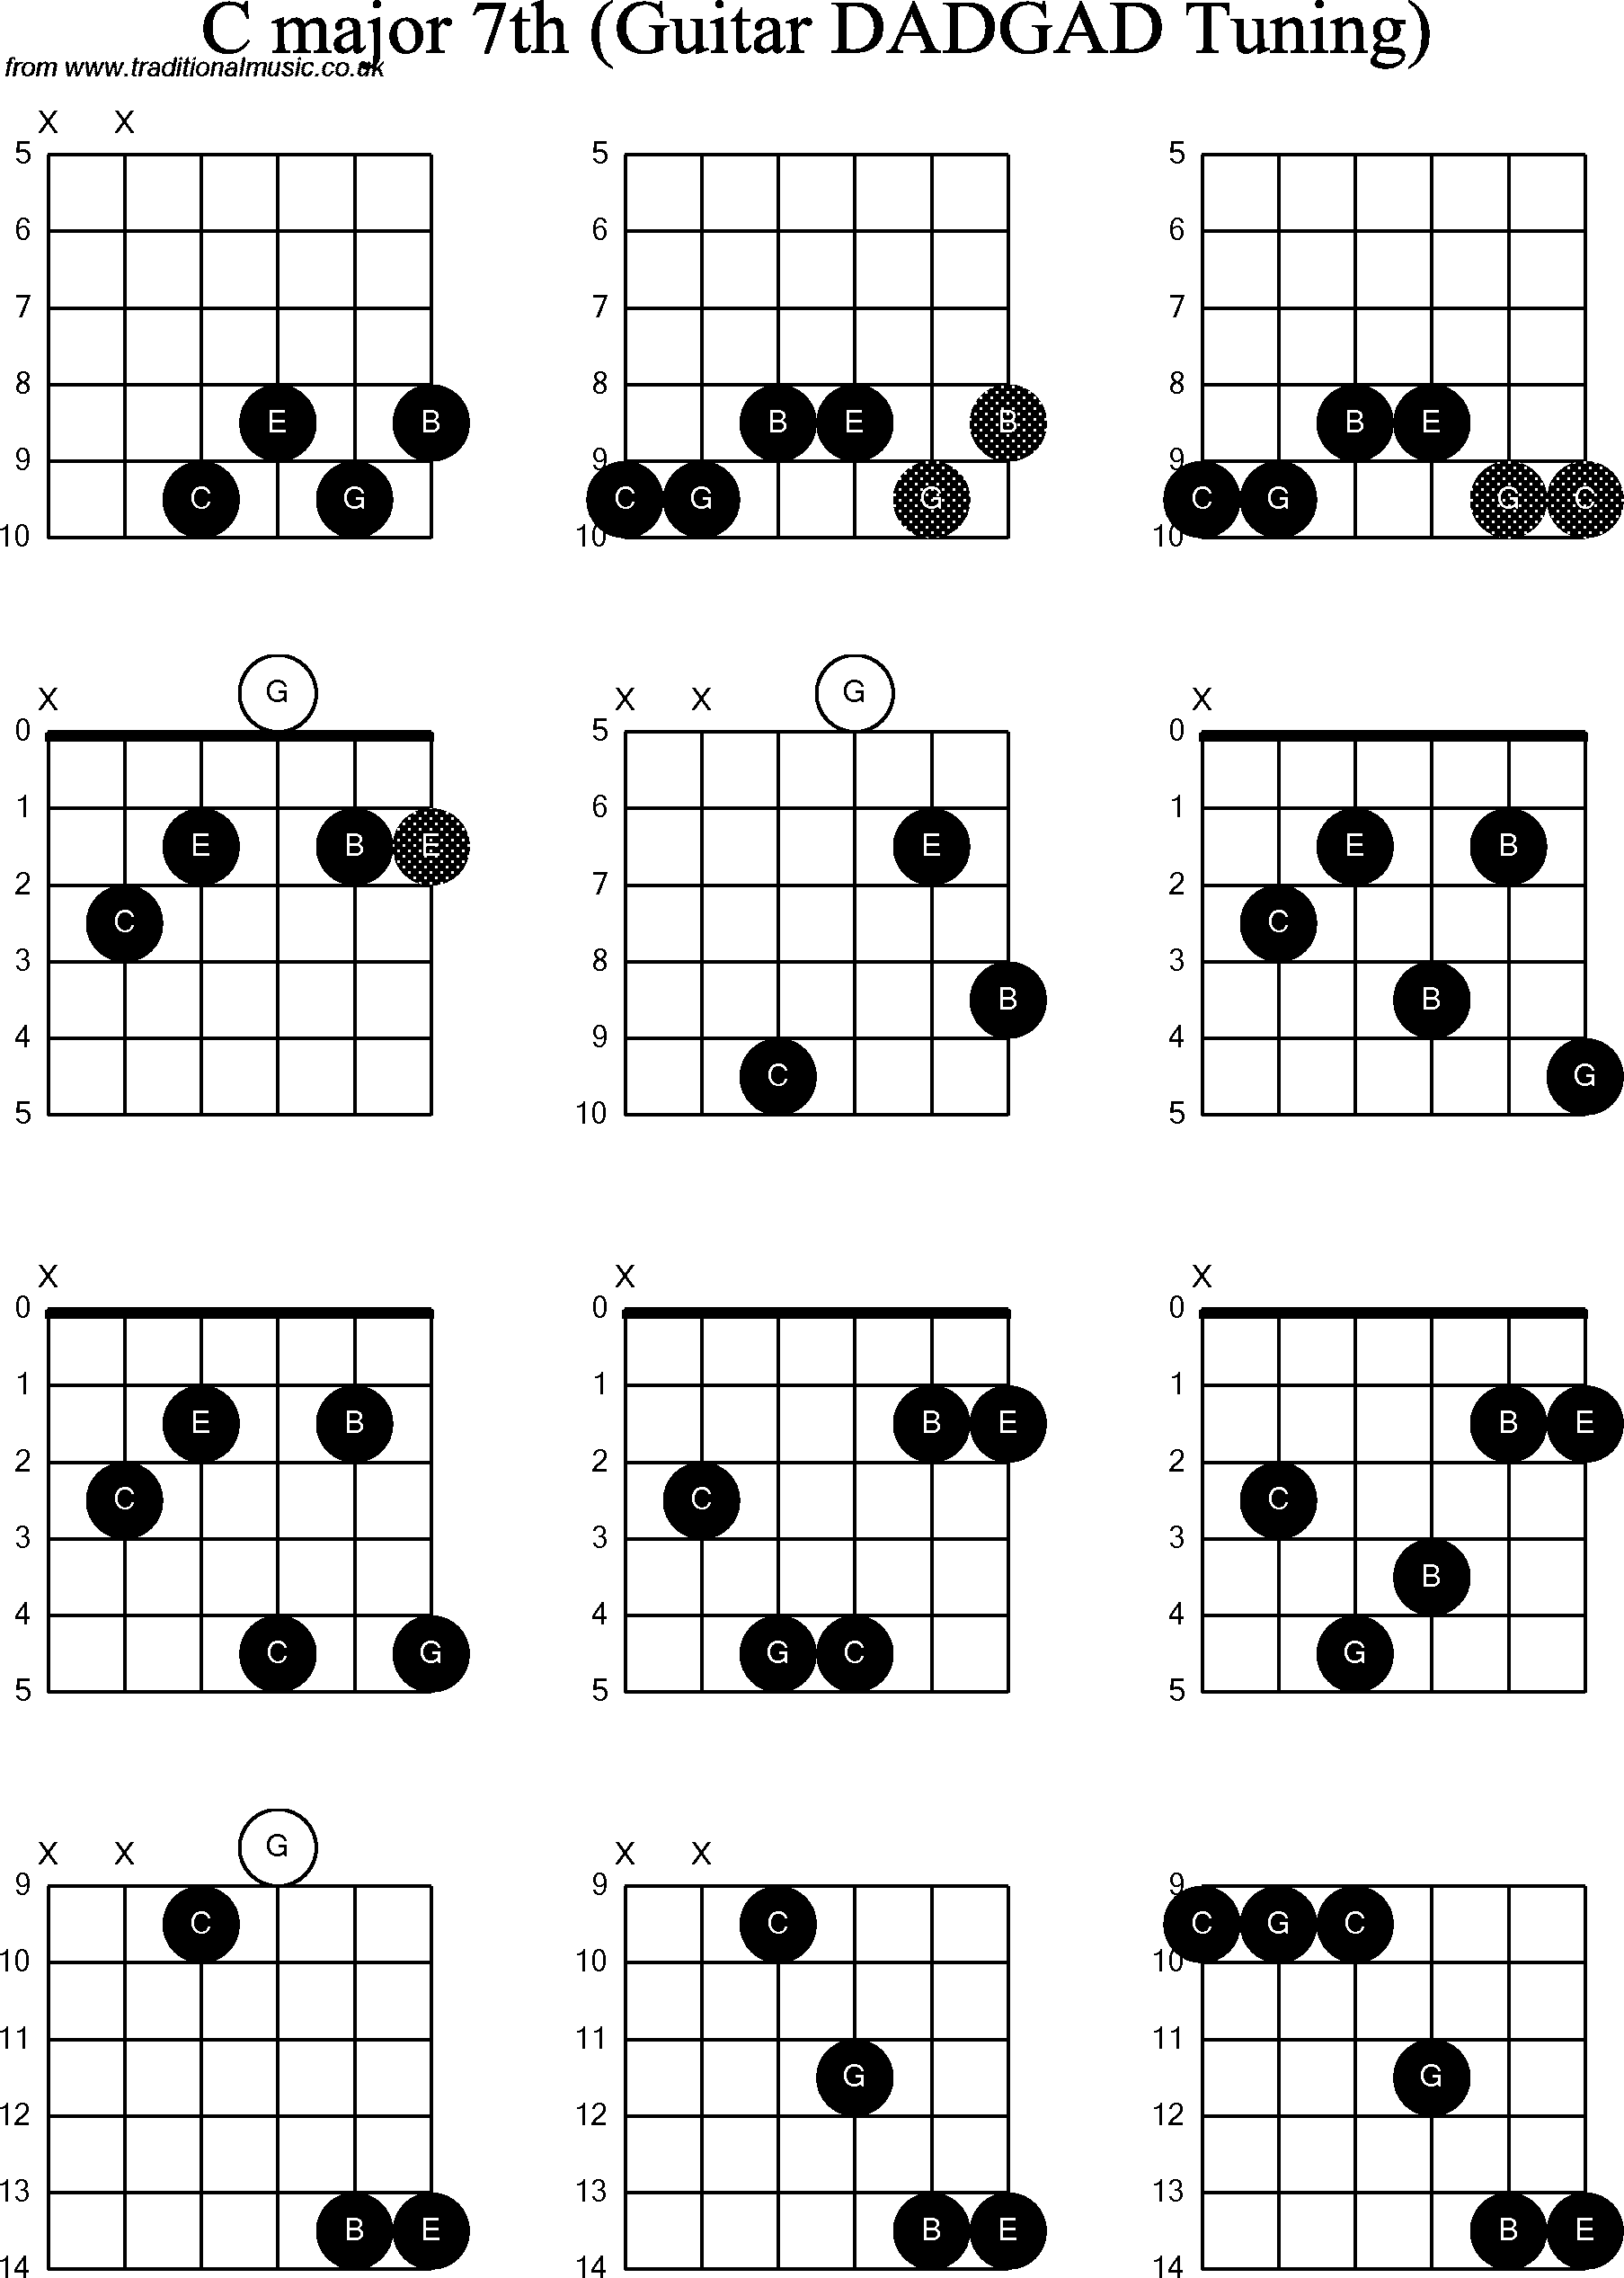 Chord diagrams d modal guitar dadgad c major7th chord diagrams for d modal guitardadgad c major7th hexwebz Choice Image